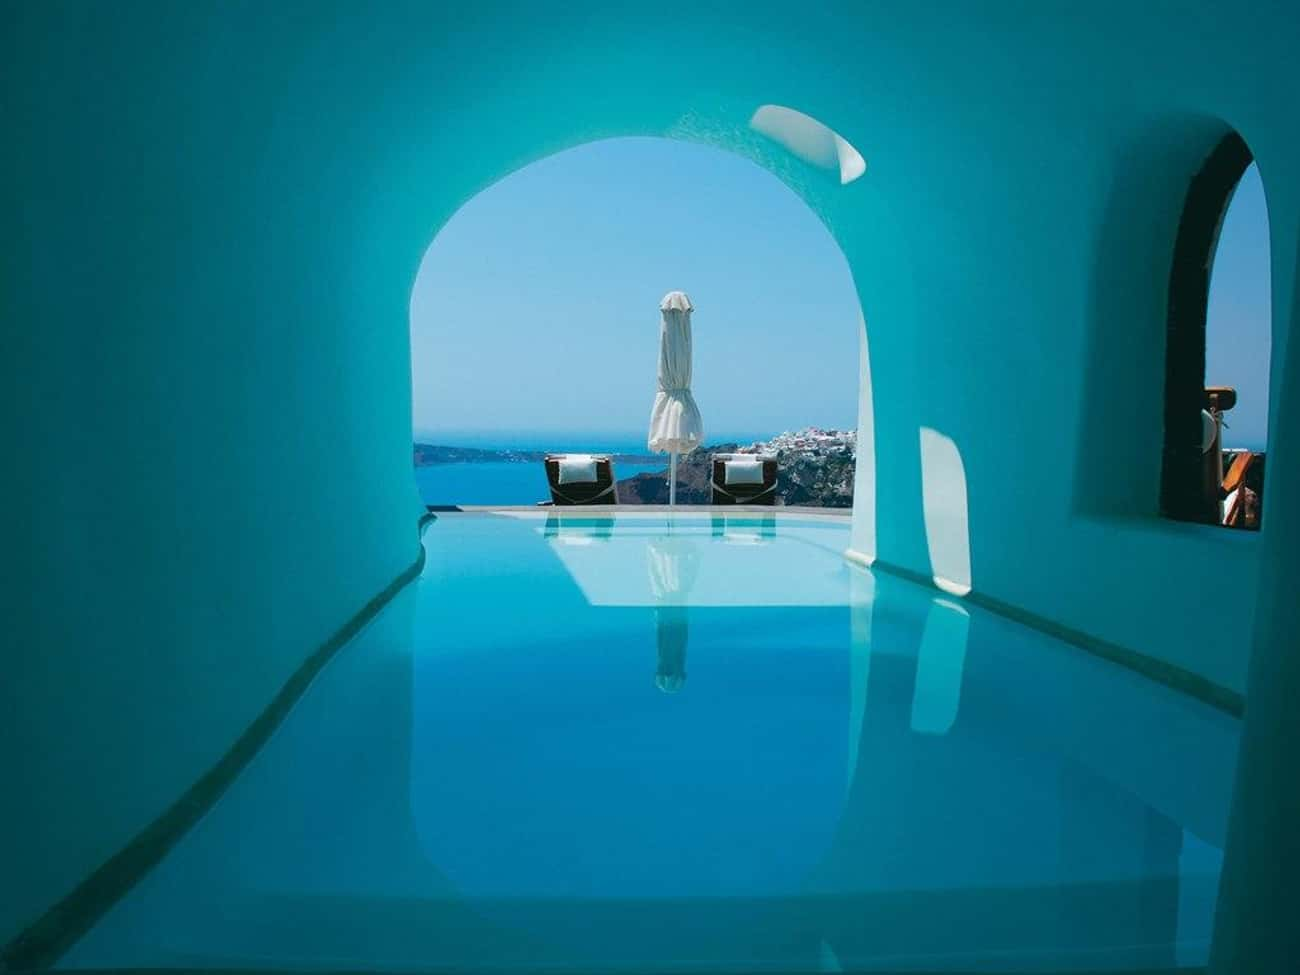 Perivolas Hotel Cave Pool - Sa is listed (or ranked) 4 on the list The 35 Coolest Pools in the World